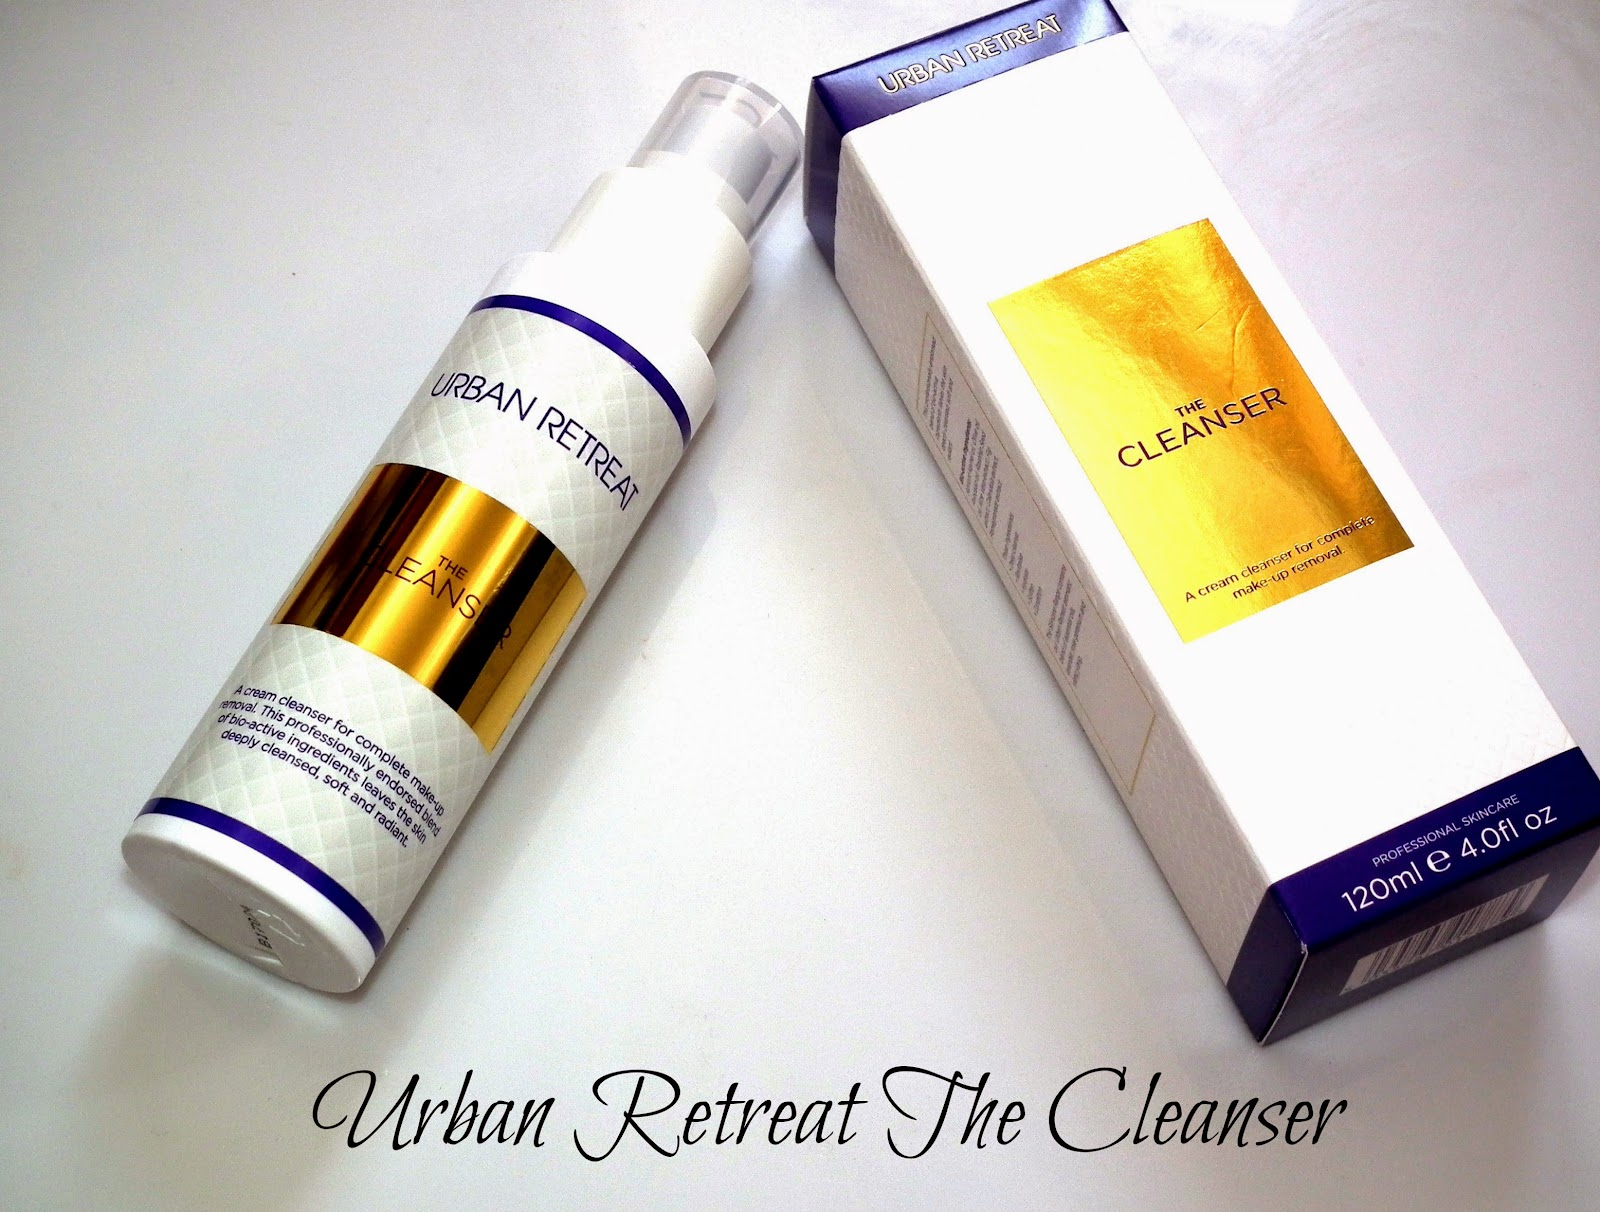 Urban Retreat The Cleanser Reviews